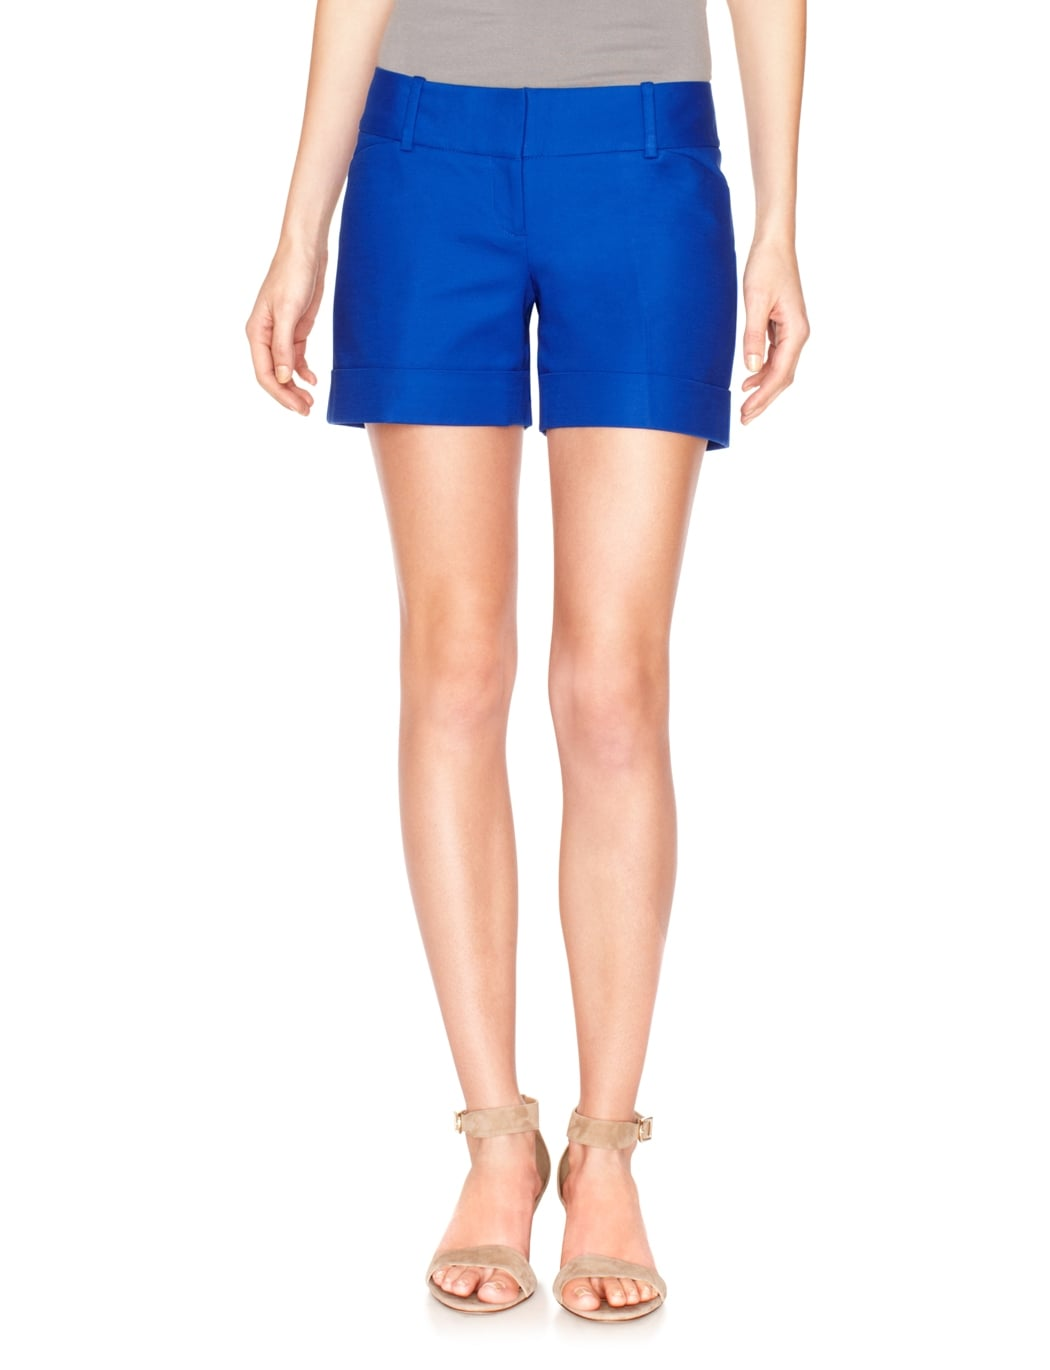 The Limited's cobalt shorts ($45) would look impeccably chic with some sleek black add-ons. We can also see it with a colorful embellished jacket.